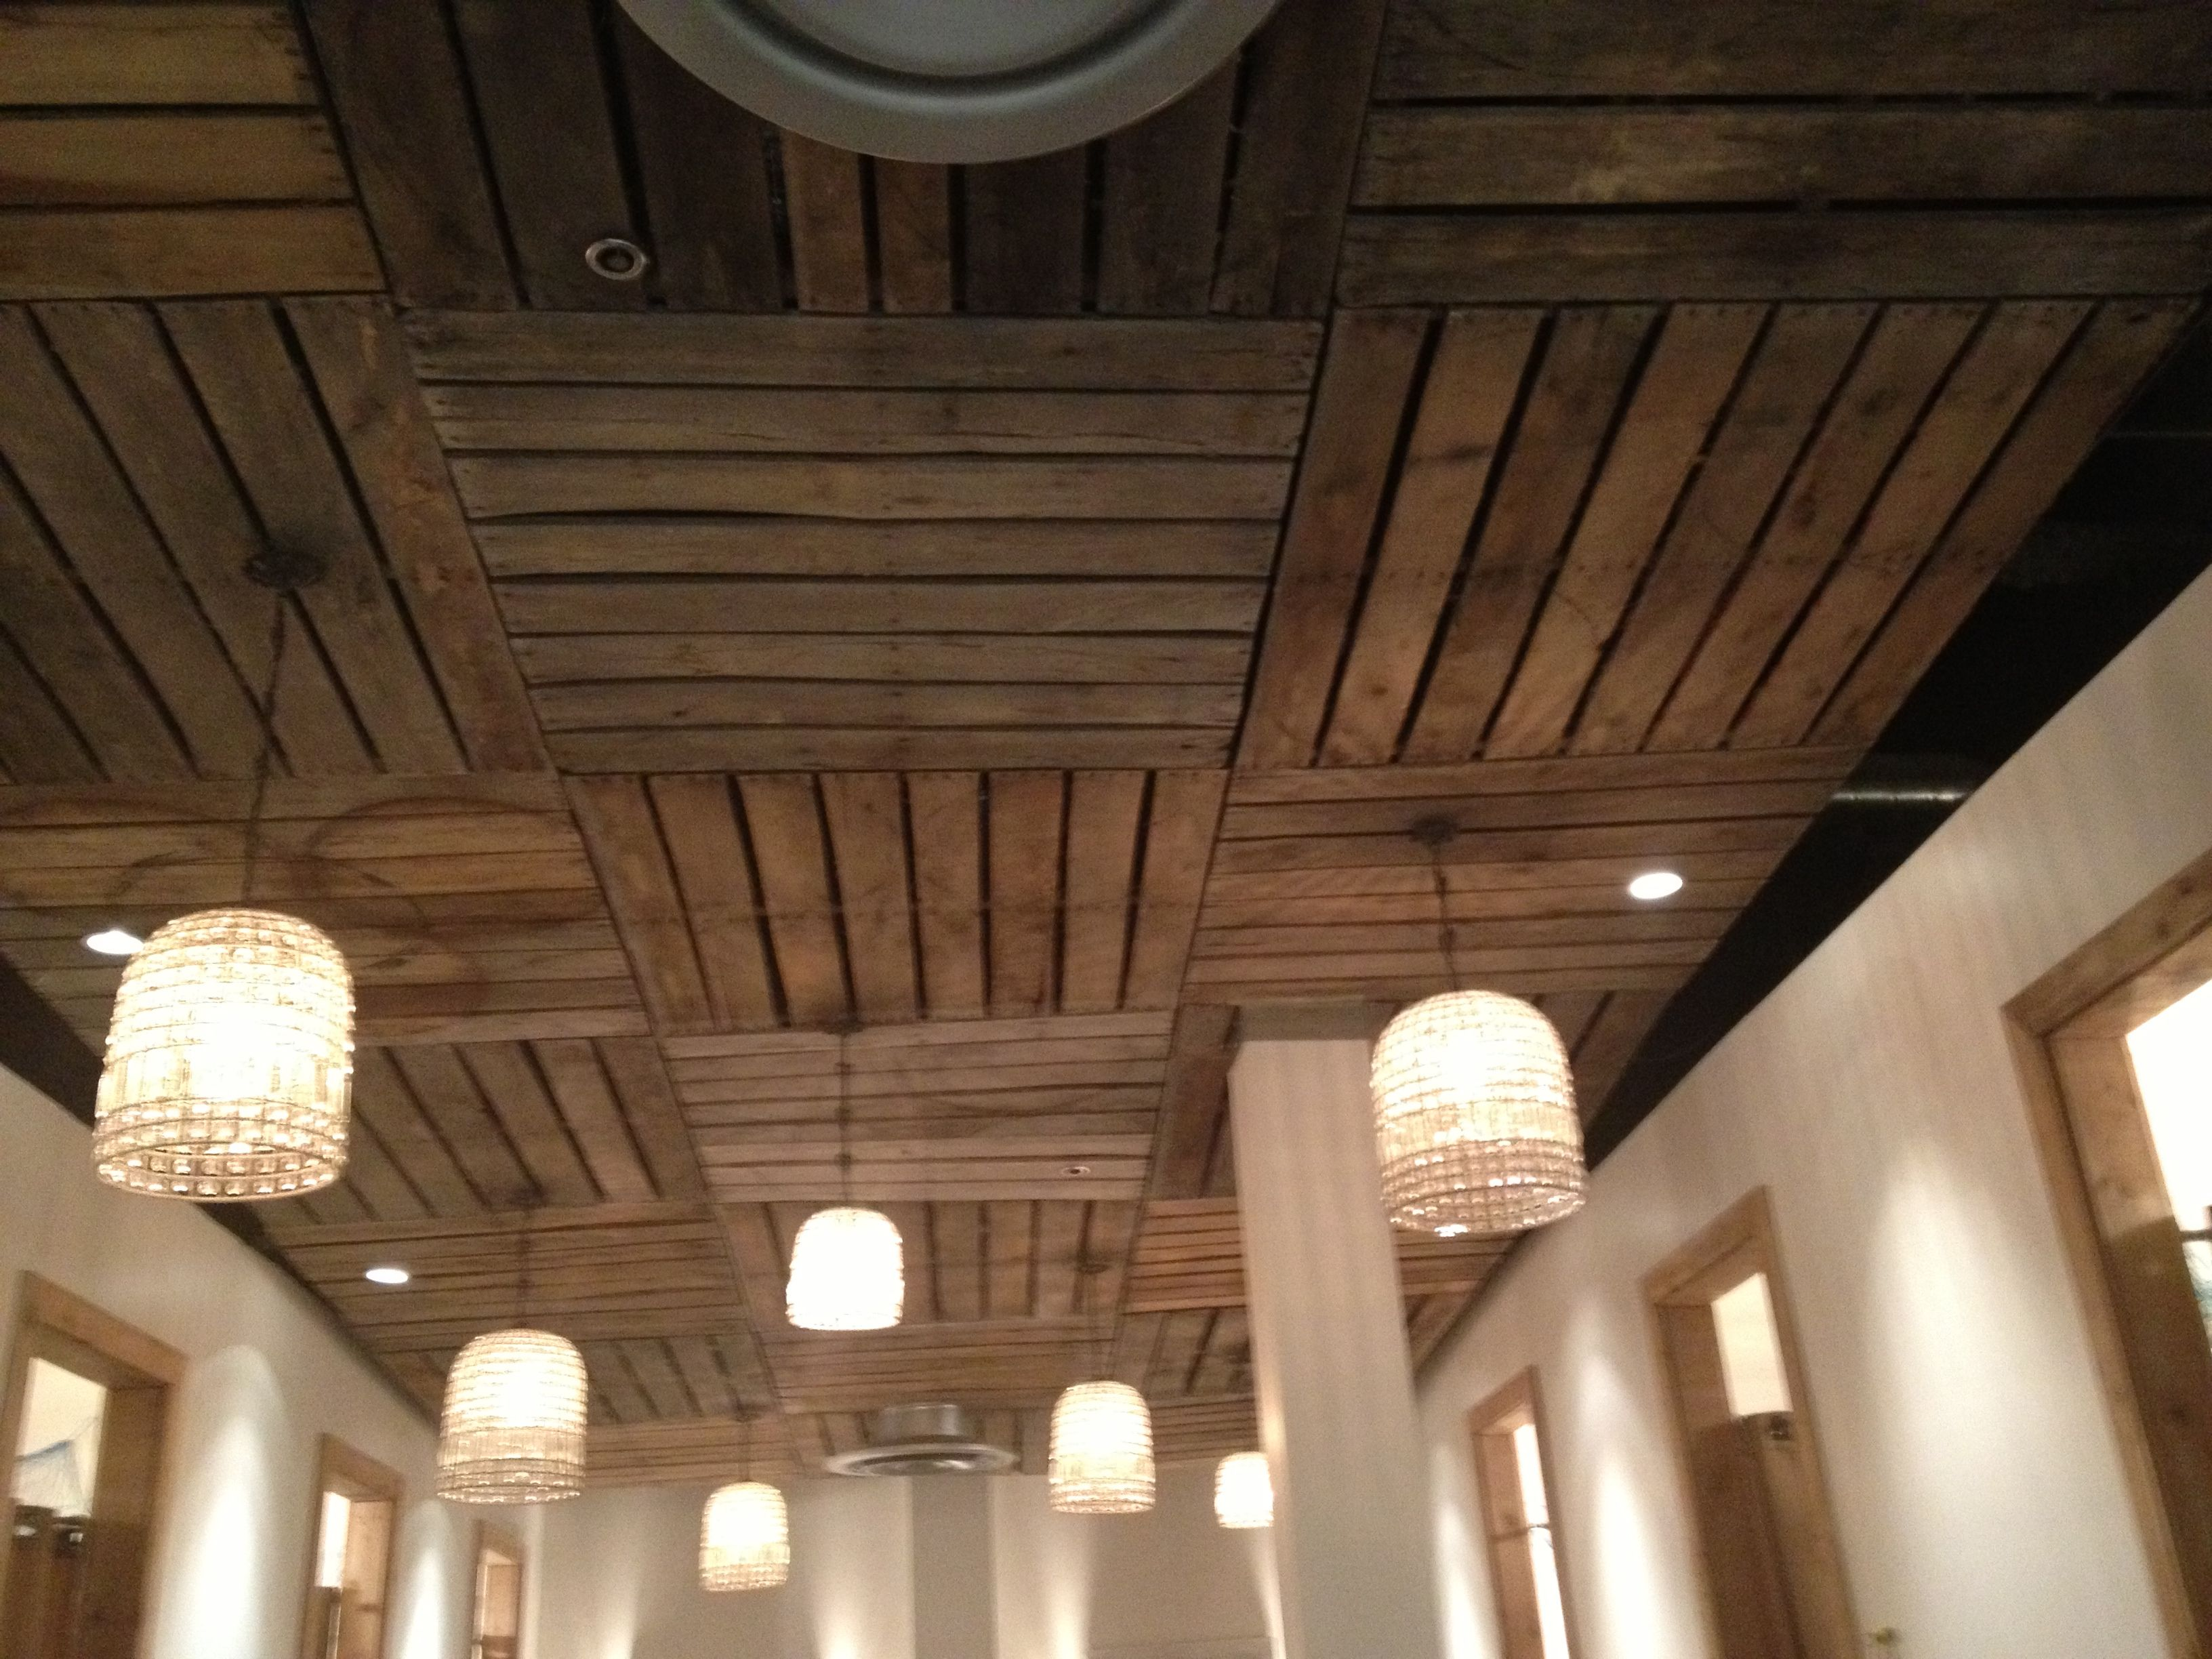 Pallet Ceiling Love This Idea For Basement And Also Pallets For The Cornice Above The Low Ceiling Basement Basement Ceiling Insulation Drop Ceiling Basement